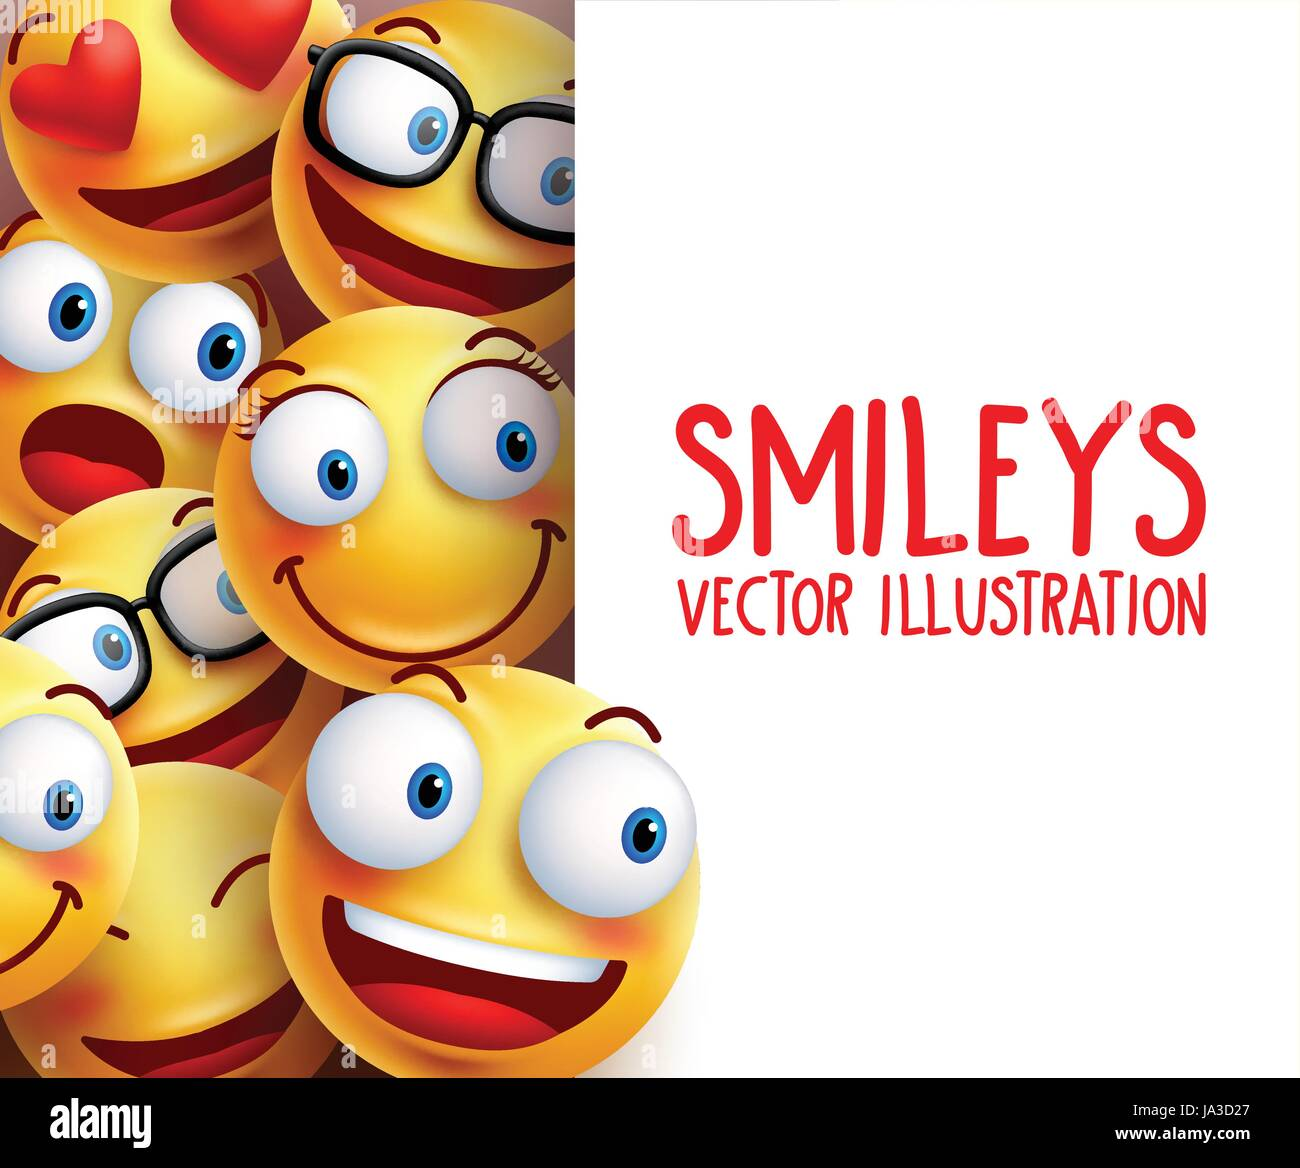 Funny smiley face vector characters happy smiling in the background funny smiley face vector characters happy smiling in the background with empty white board space for text vector illustration voltagebd Image collections